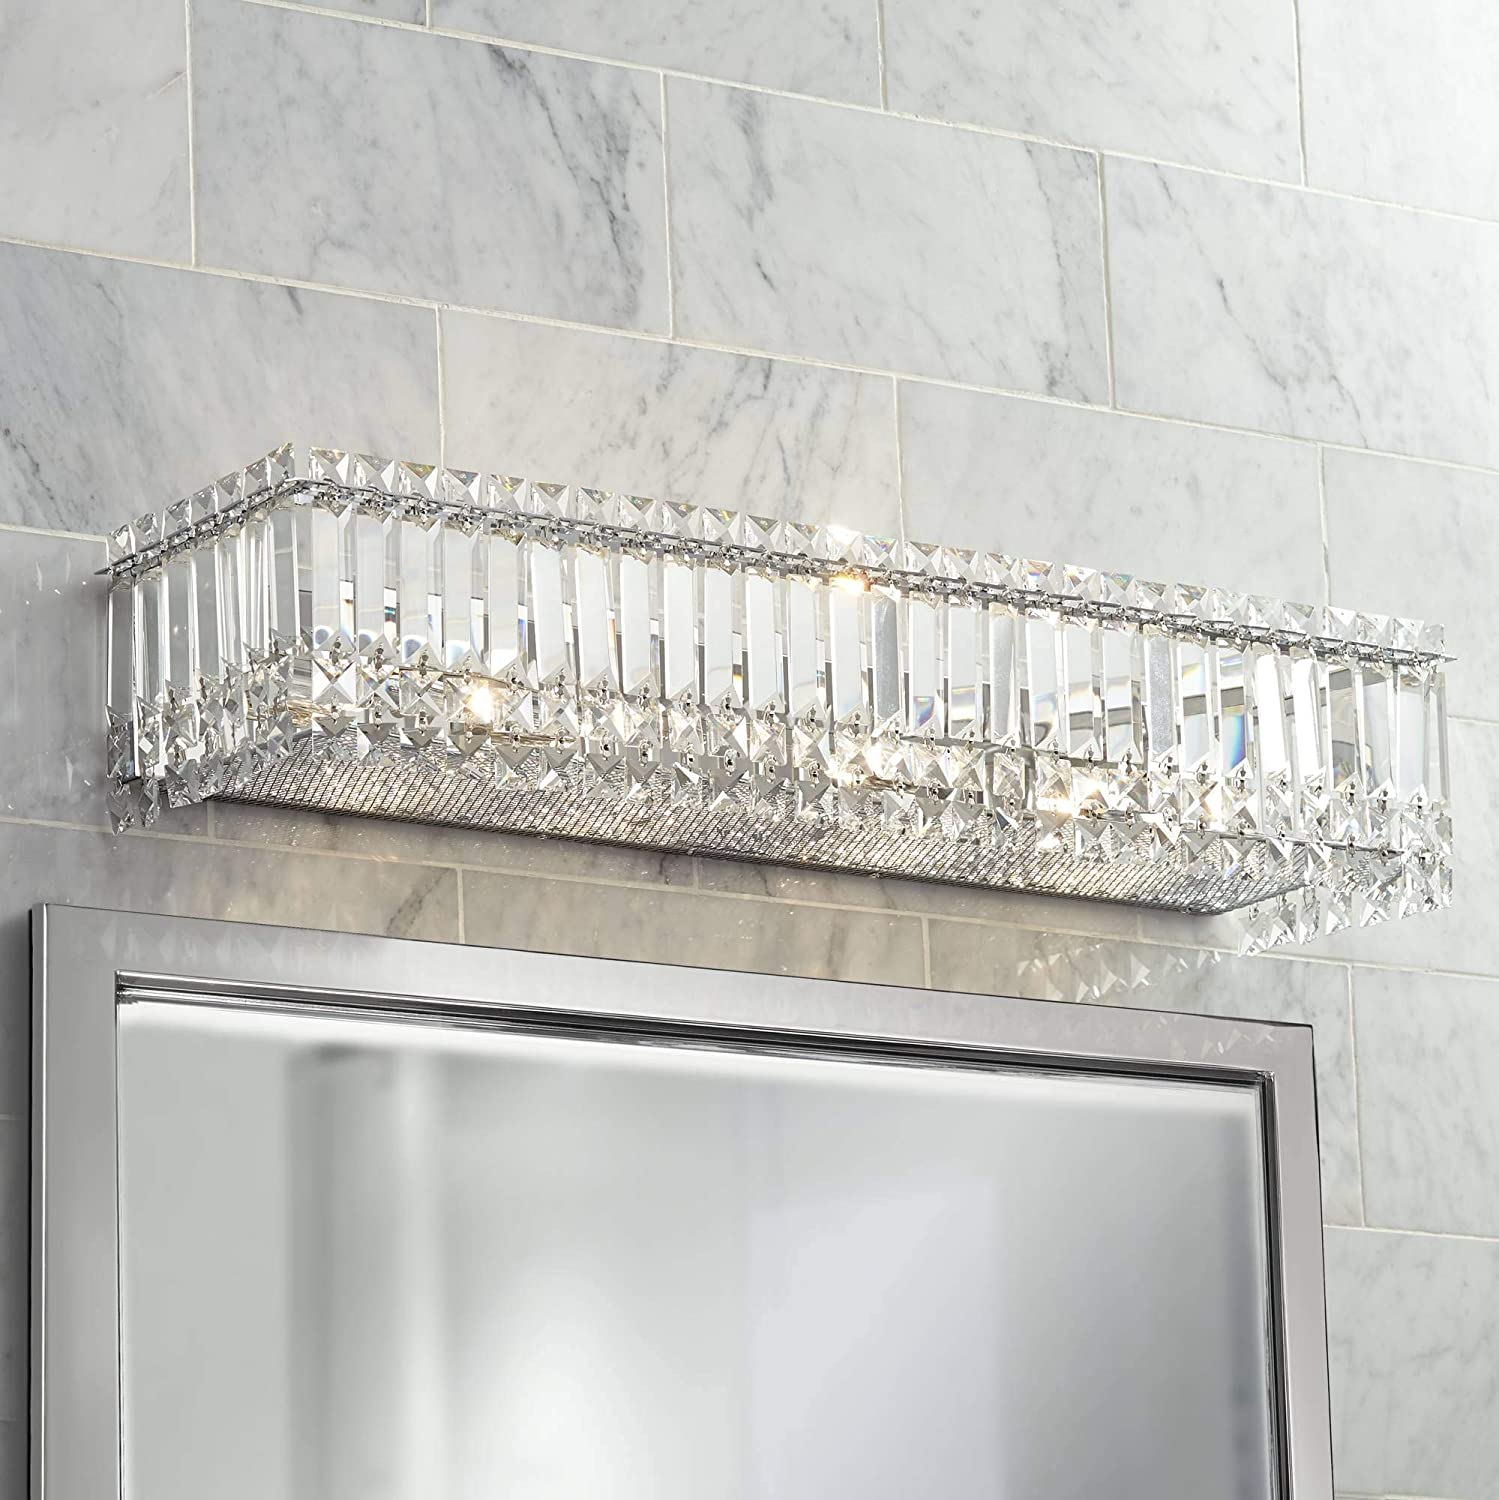 Modern Wall Light Cut Crystal Columns Chrome 30 Vanity Fixture for Bathroom Over Mirror – Possini Euro Design